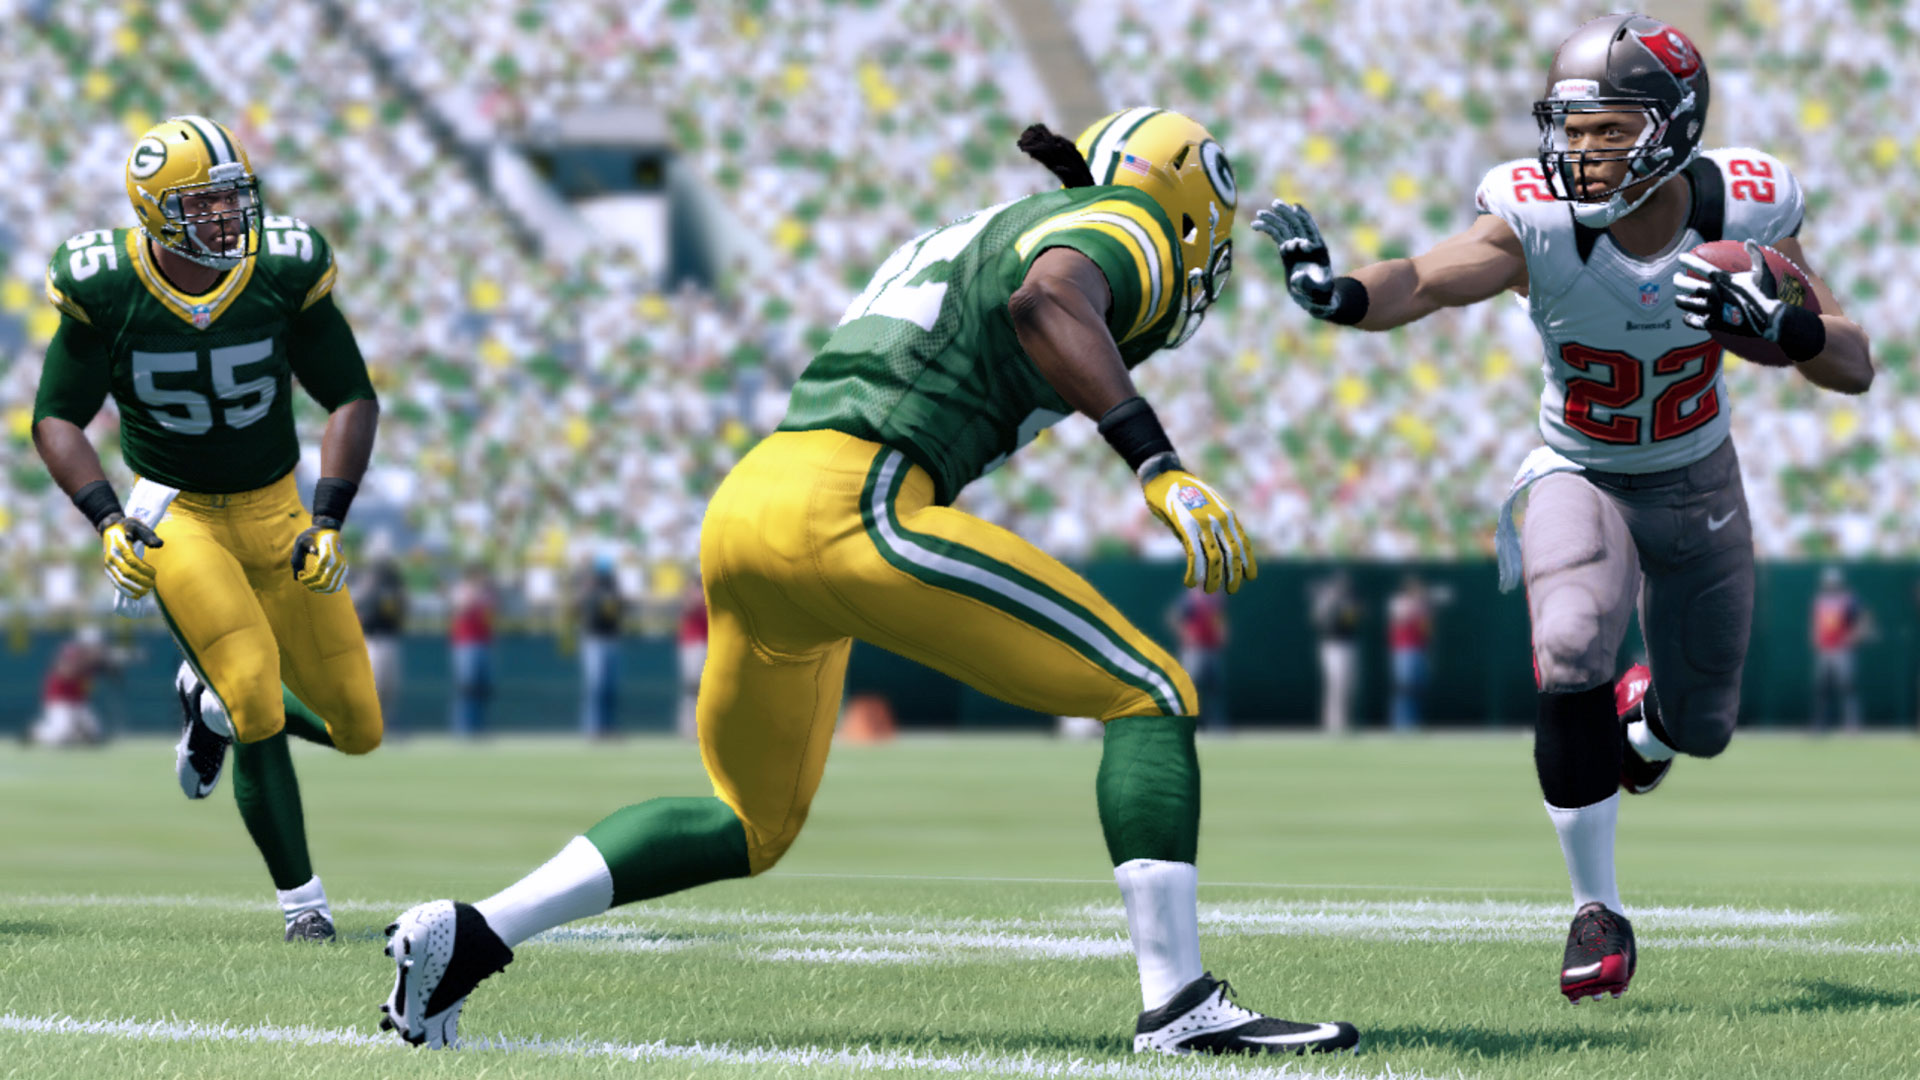 Download Epic Madden NFL Mobile Gameplay Wallpaper 19201080 for 1920x1080